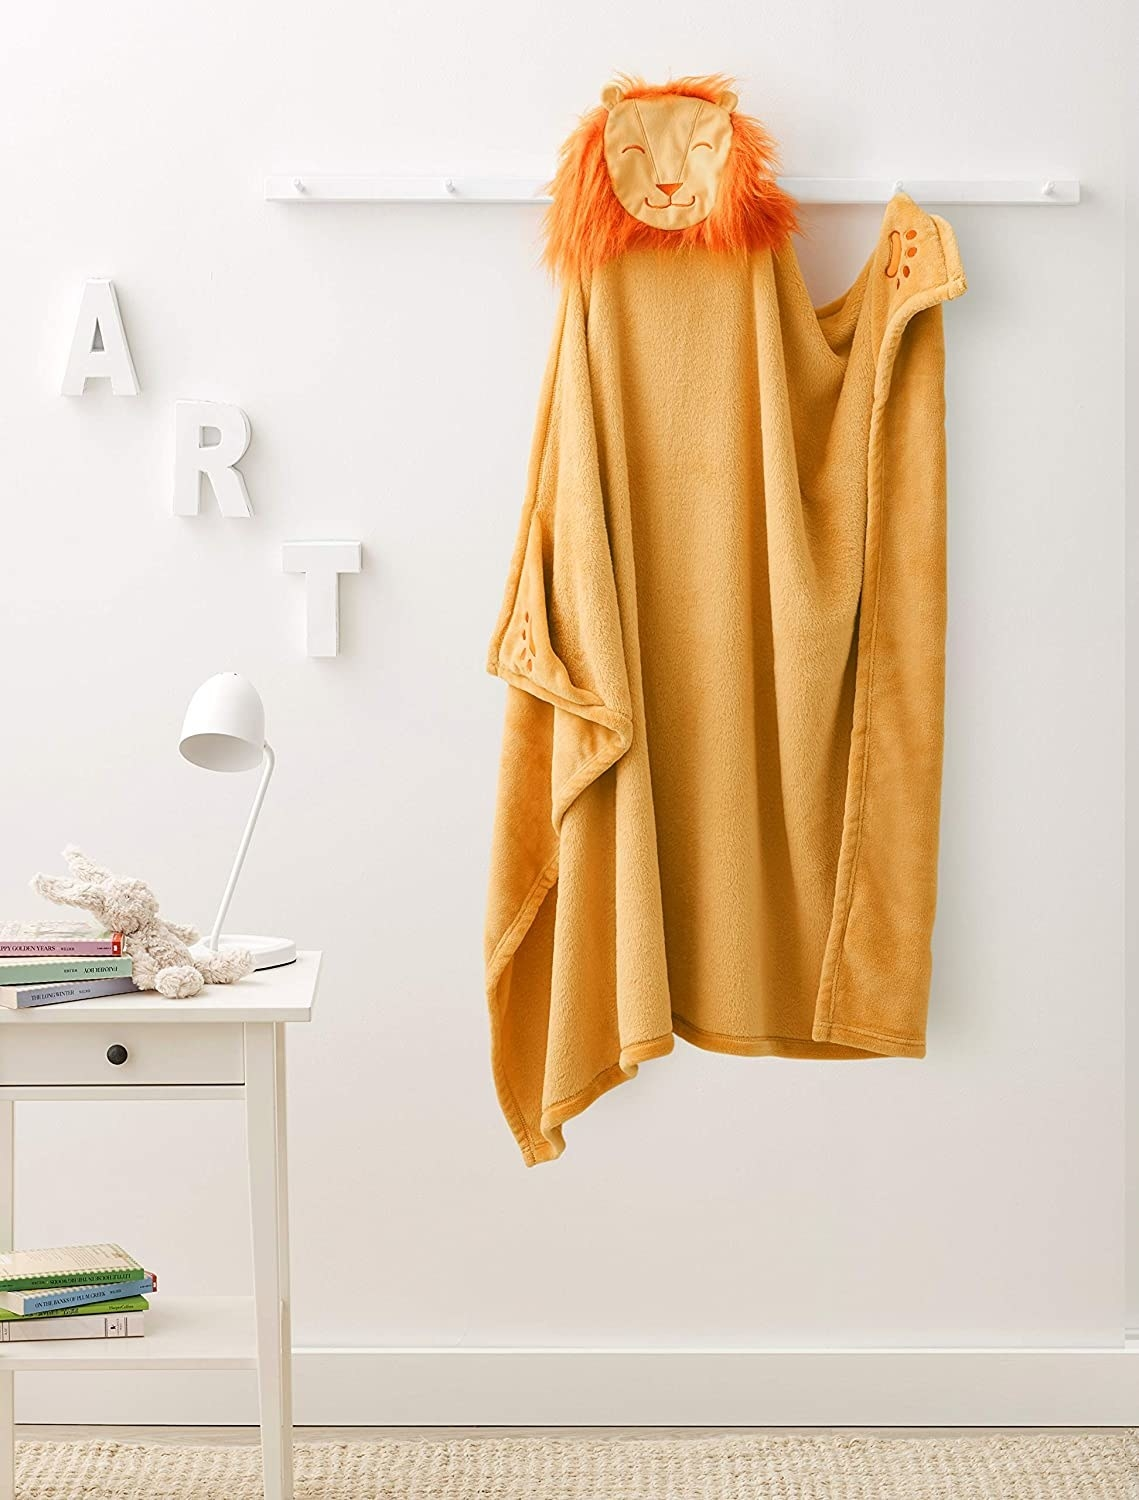 the orange lion blanket towel